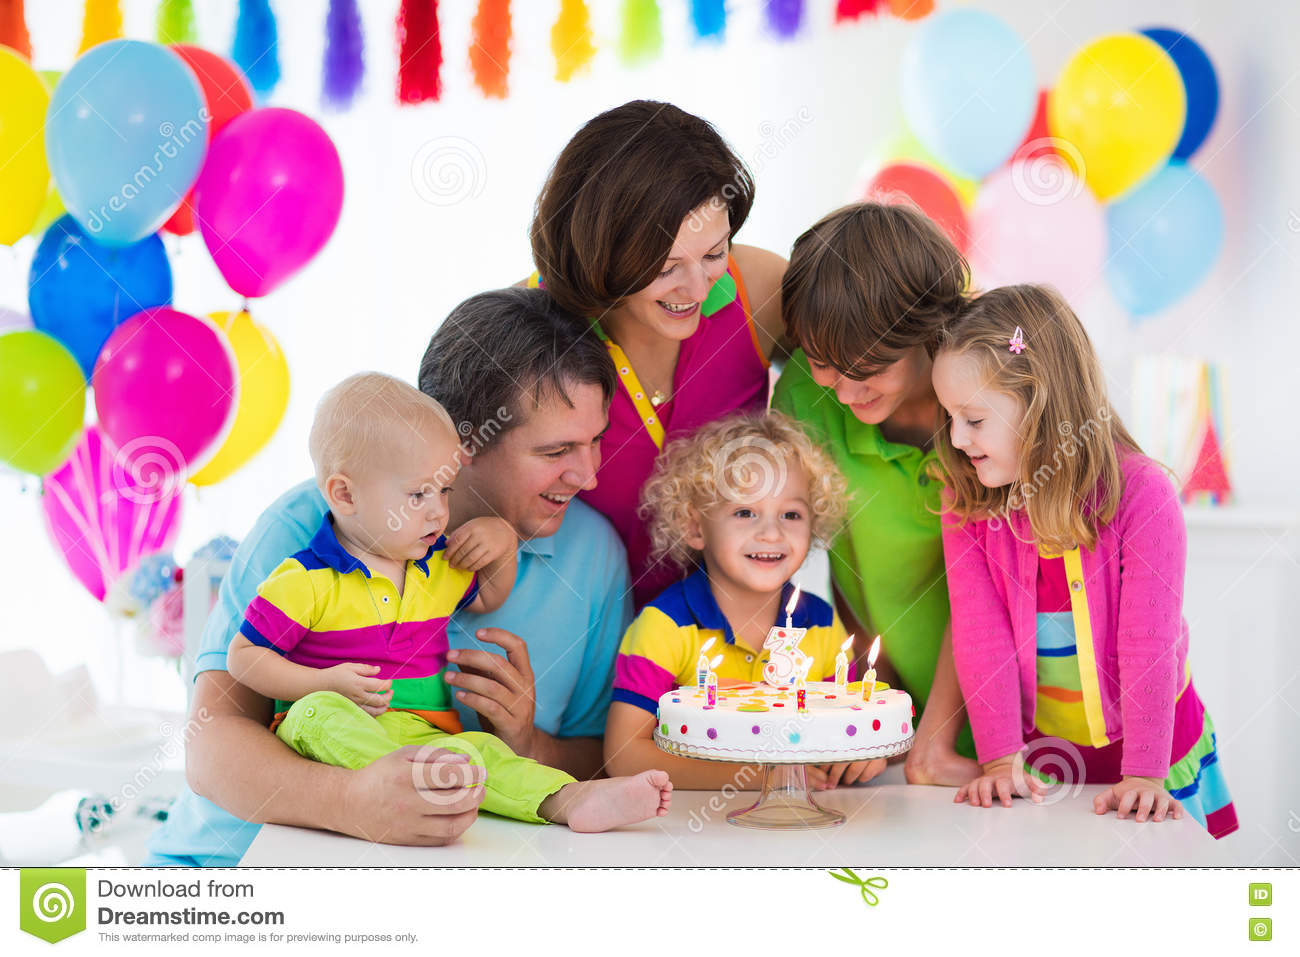 Little Kid Birthday Party Kids Birthday Party Stock Photo Image Of Birthday Blowing 78805574